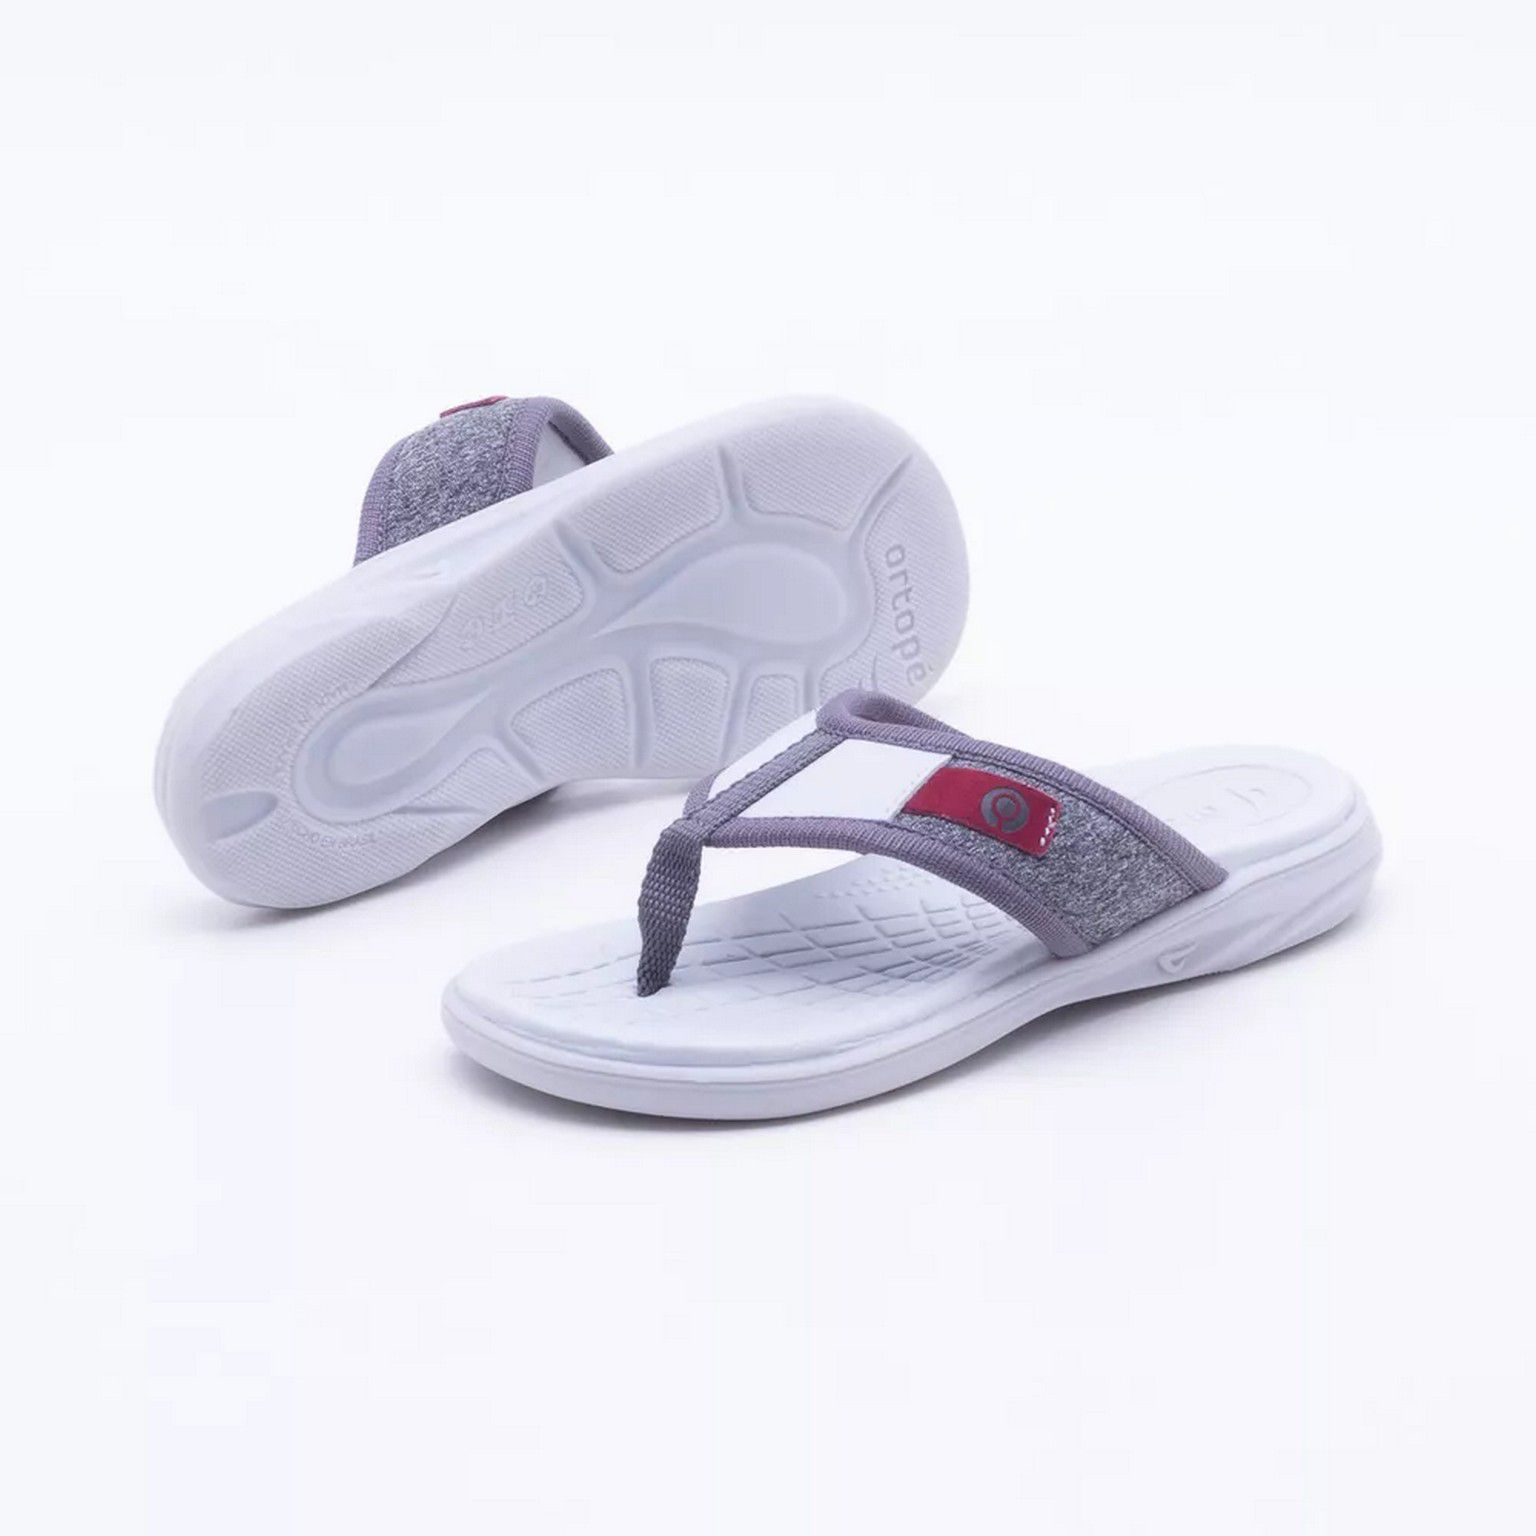 CHINELO ORTOPE REF:2169047 25/35